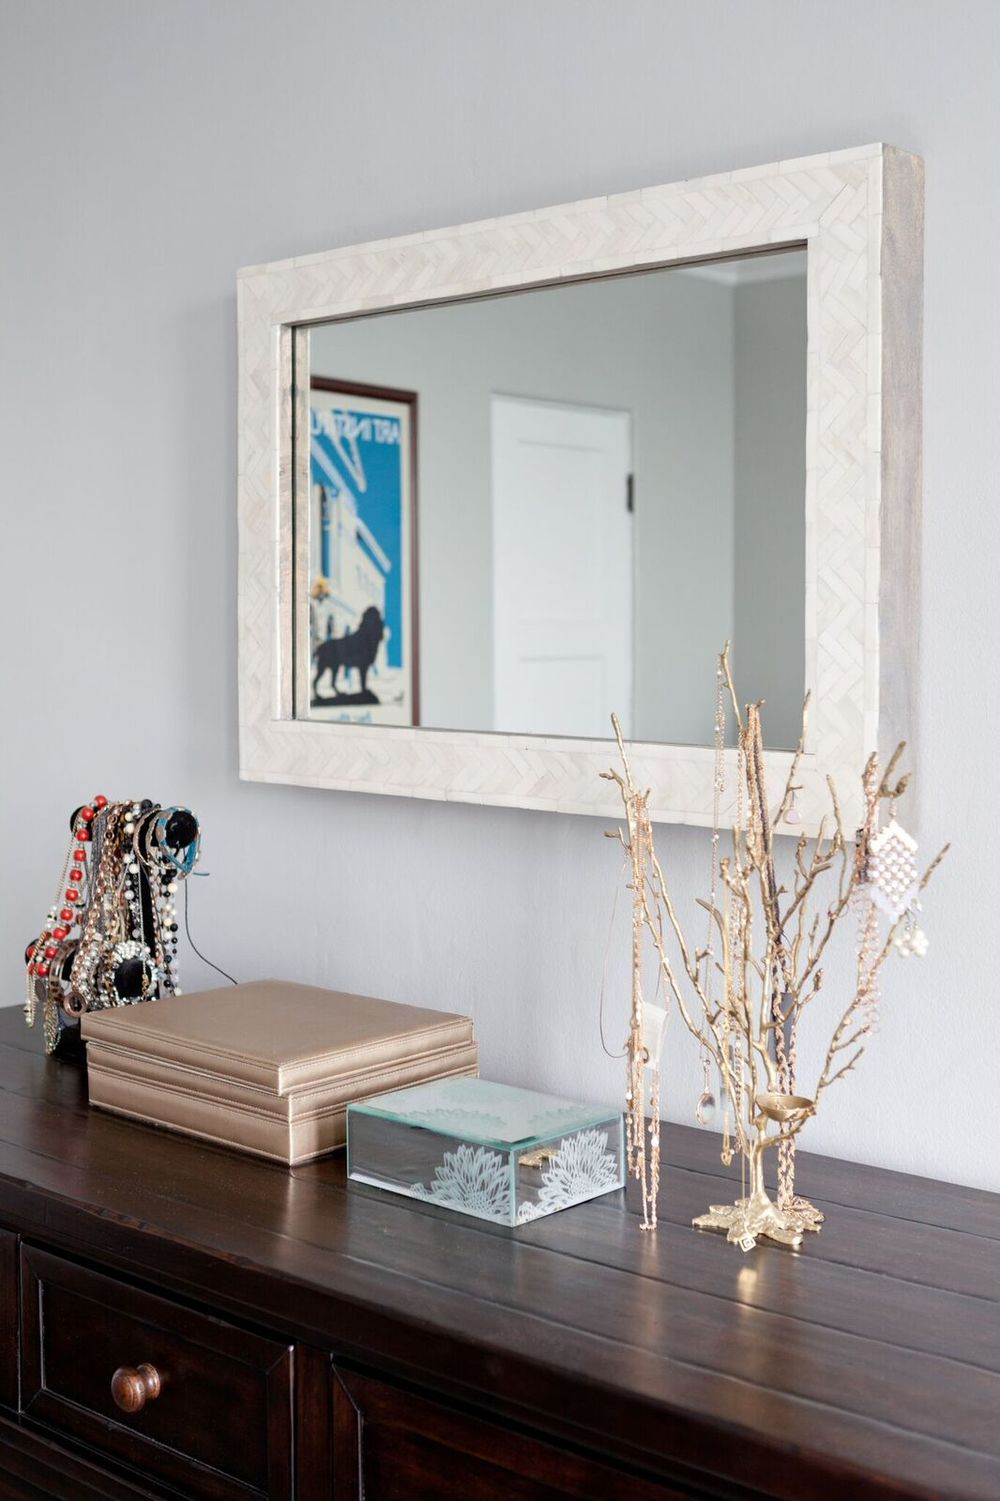 So many pretty details: The mother-of-pearl herringbone on the frame of the mirror, the beautiful jewelry and boxes, the vintage Art Institute of Chicago print in the reflection.